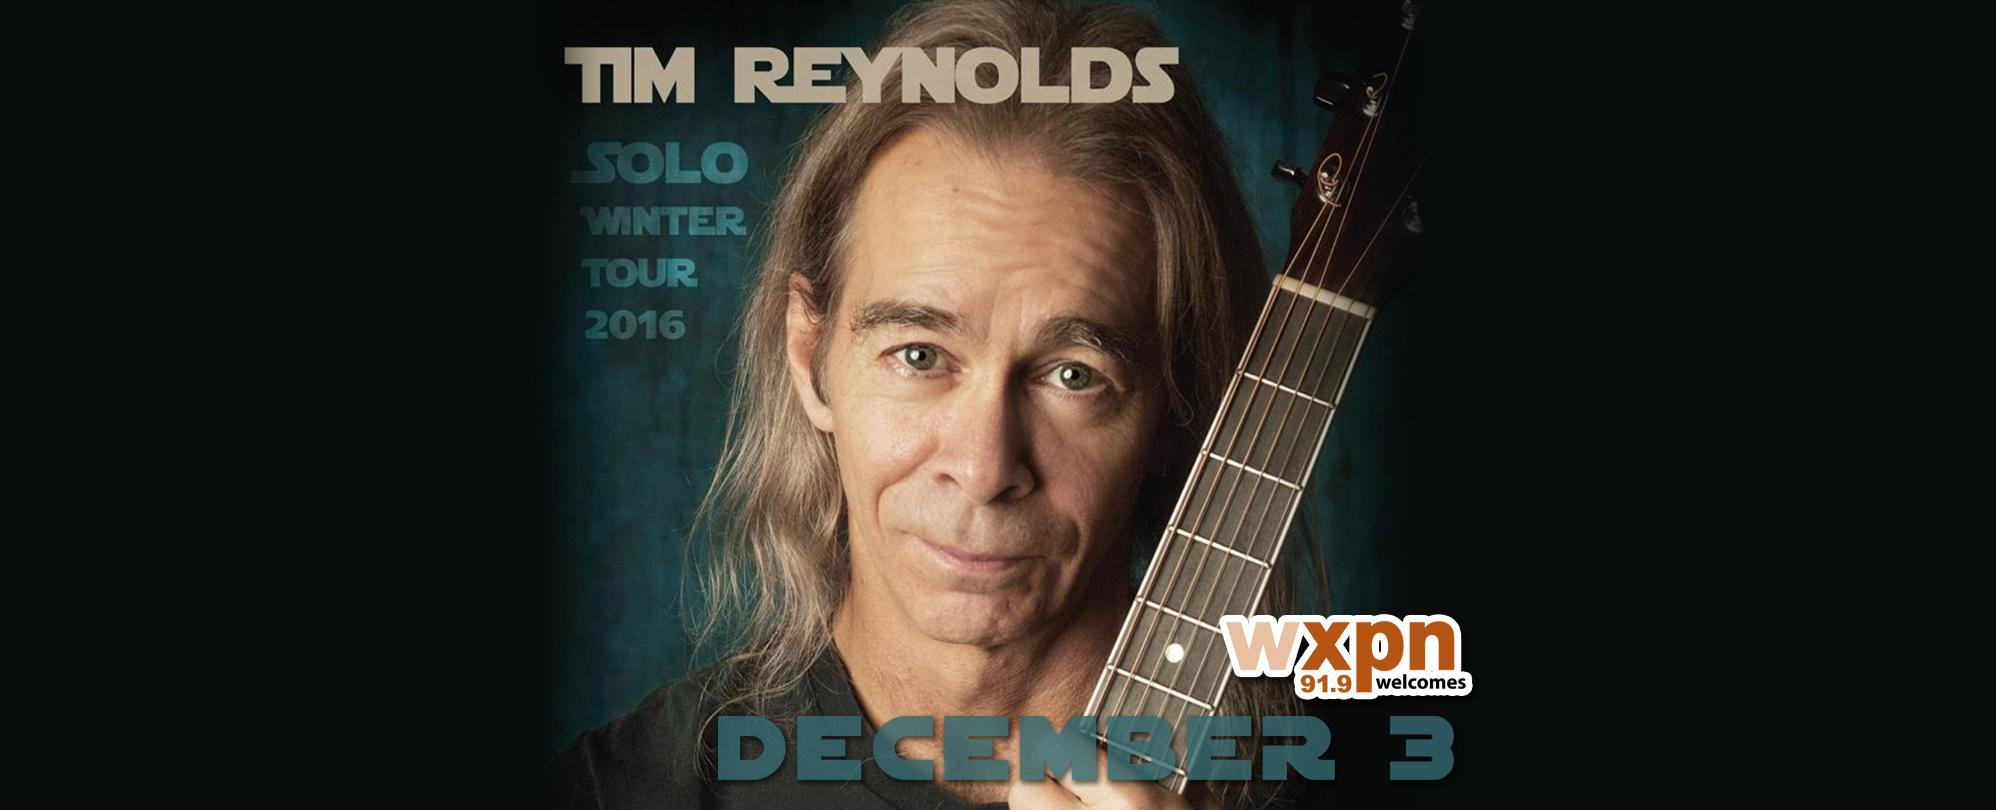 WXPN Welcomes: Tim Reynolds - Solo Winter Tour 2016